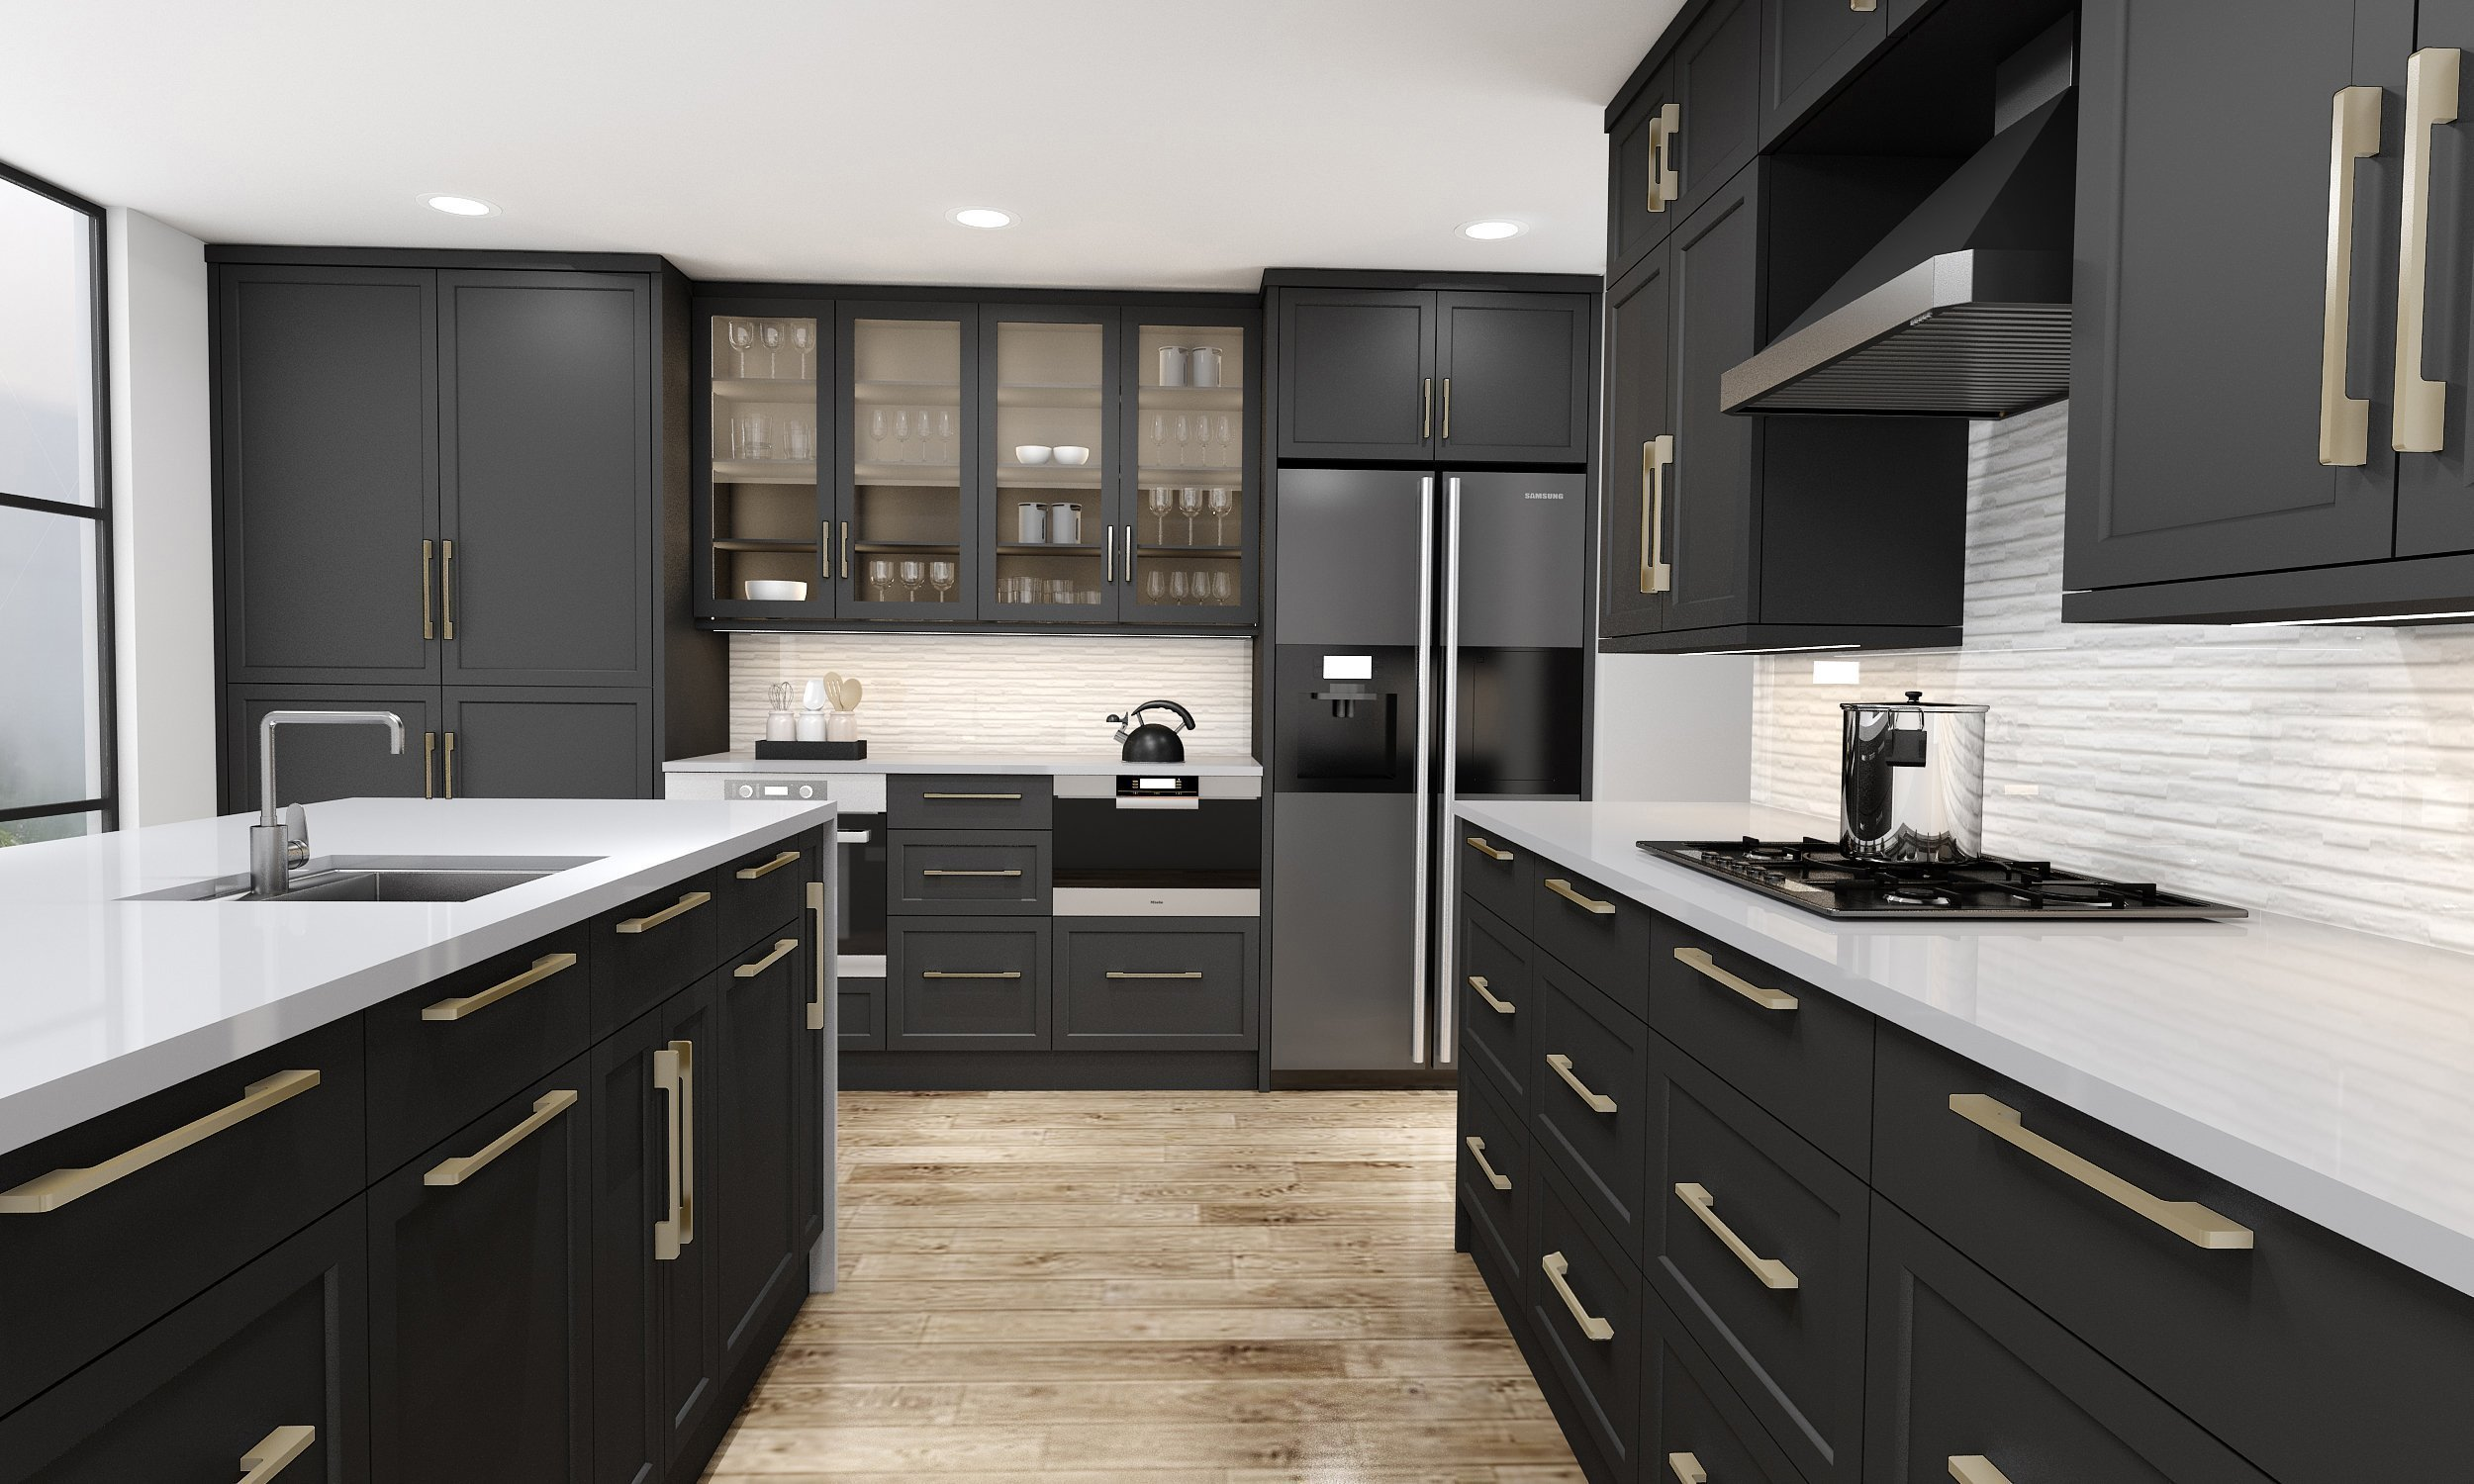 Shaker Kitchen Style L Shape Kitchen in Black Finish With Island